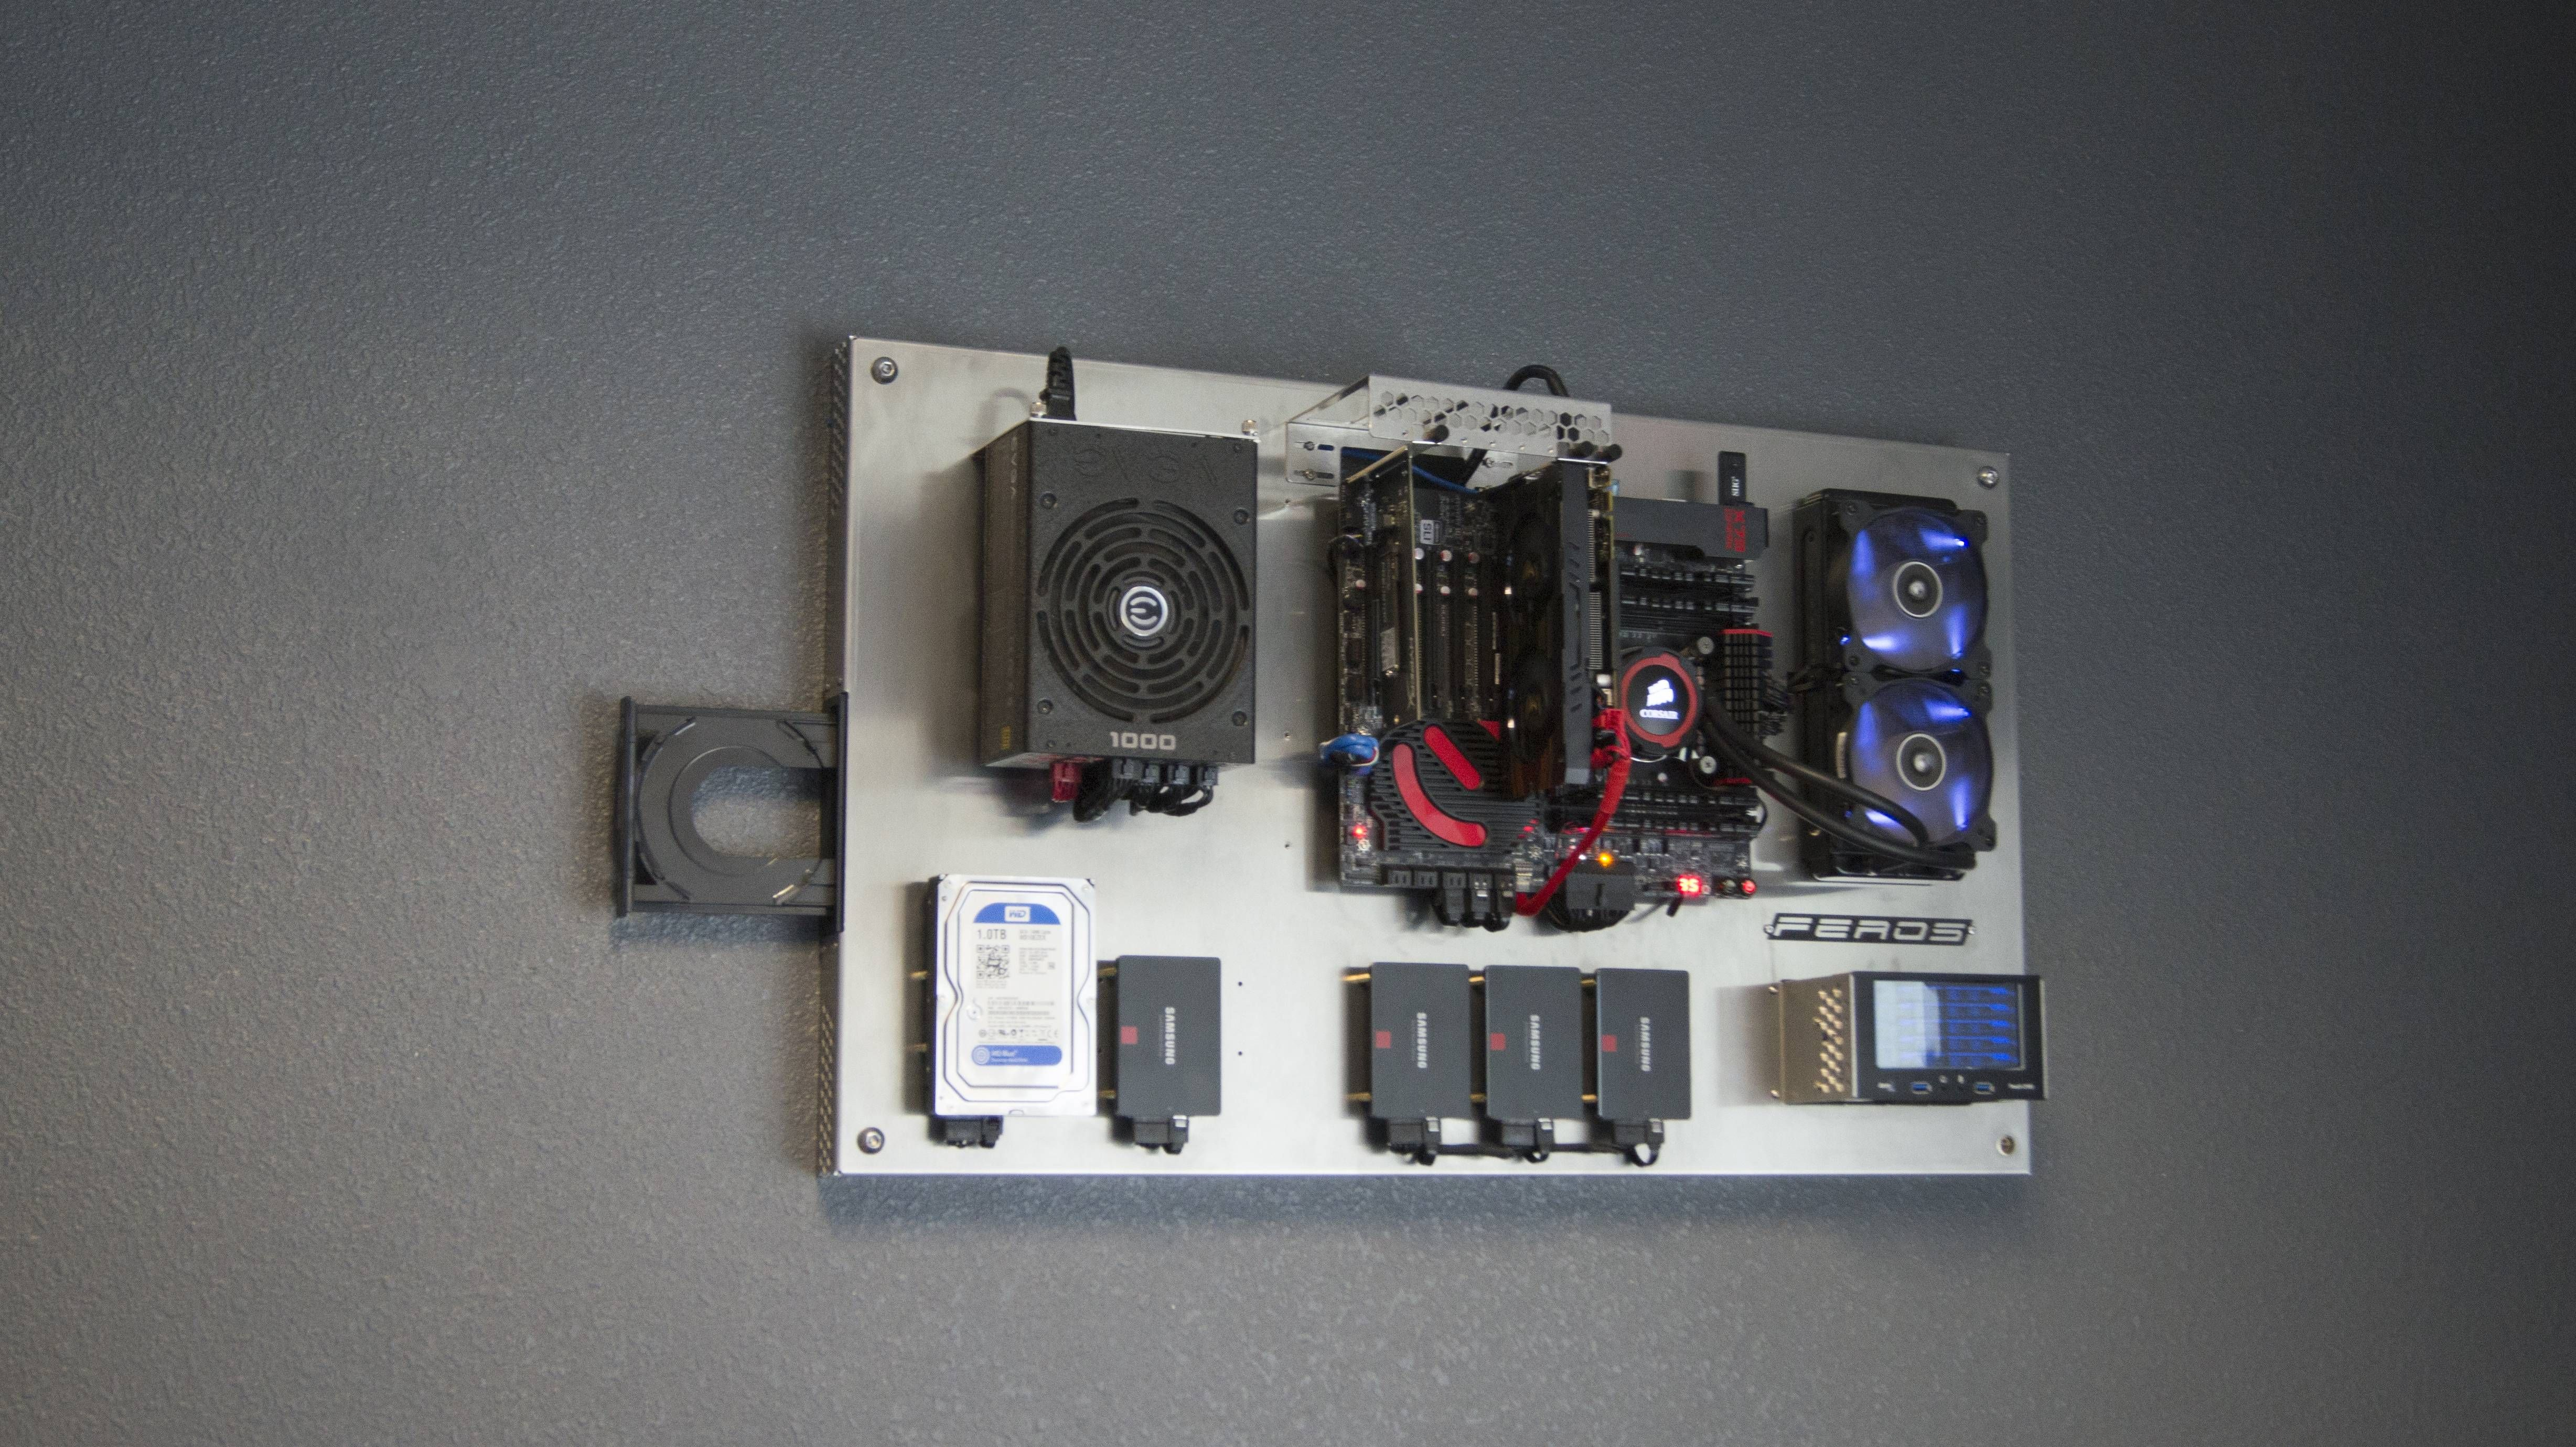 The Benefits of Having a Wall Mounted PC